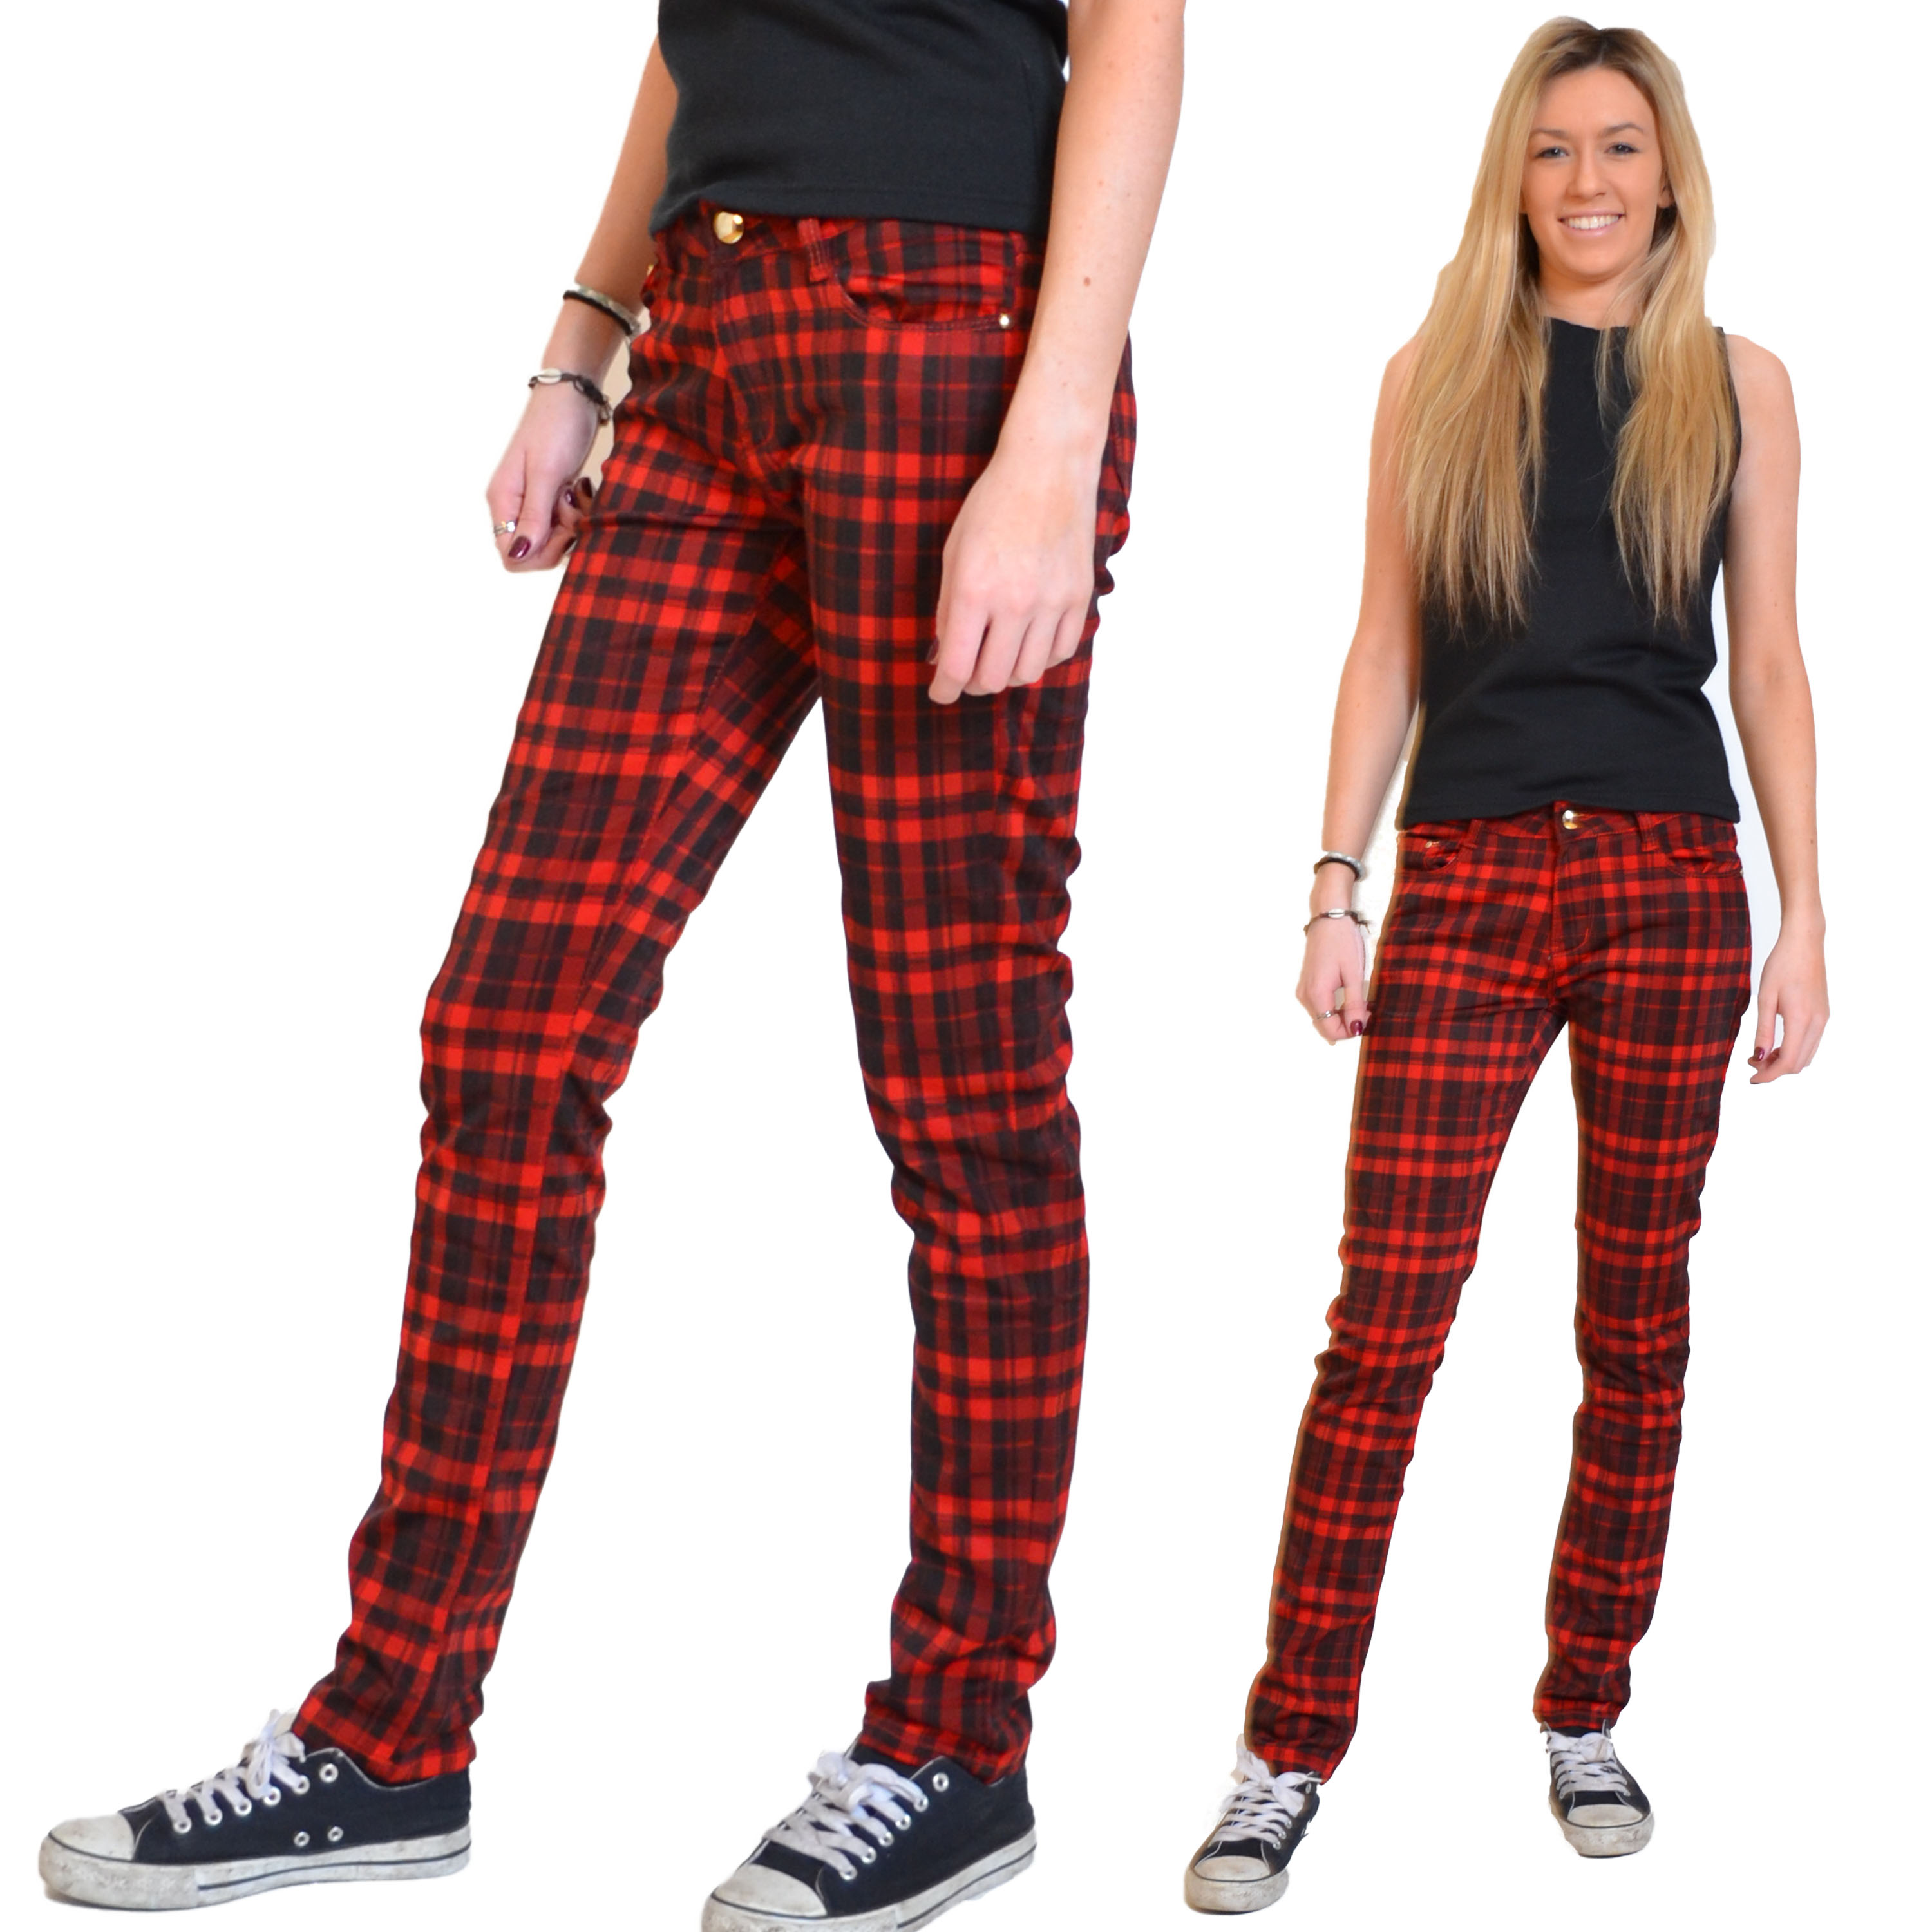 Find great deals on eBay for Red Check Trousers in Women's Pants, Clothing, Shoes and Accessories. Shop with confidence.